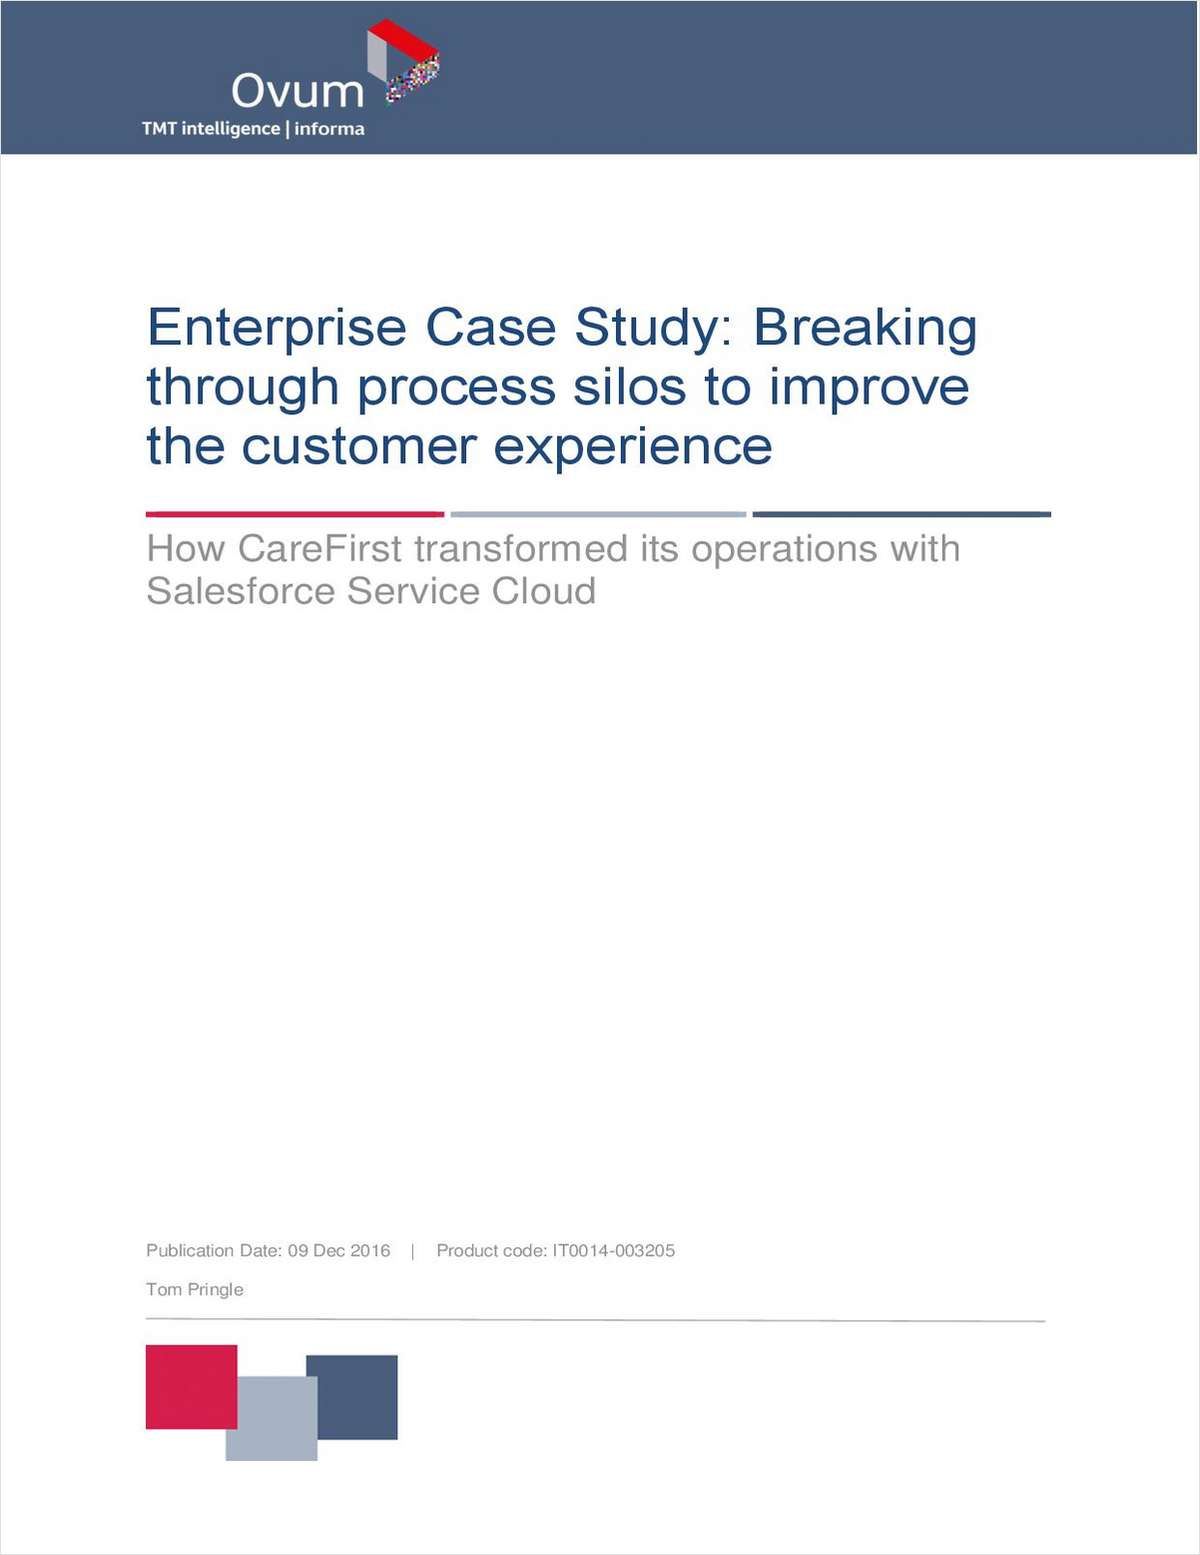 Enterprise Case Study: Breaking Through Process Silos to Improve the Customer Experience